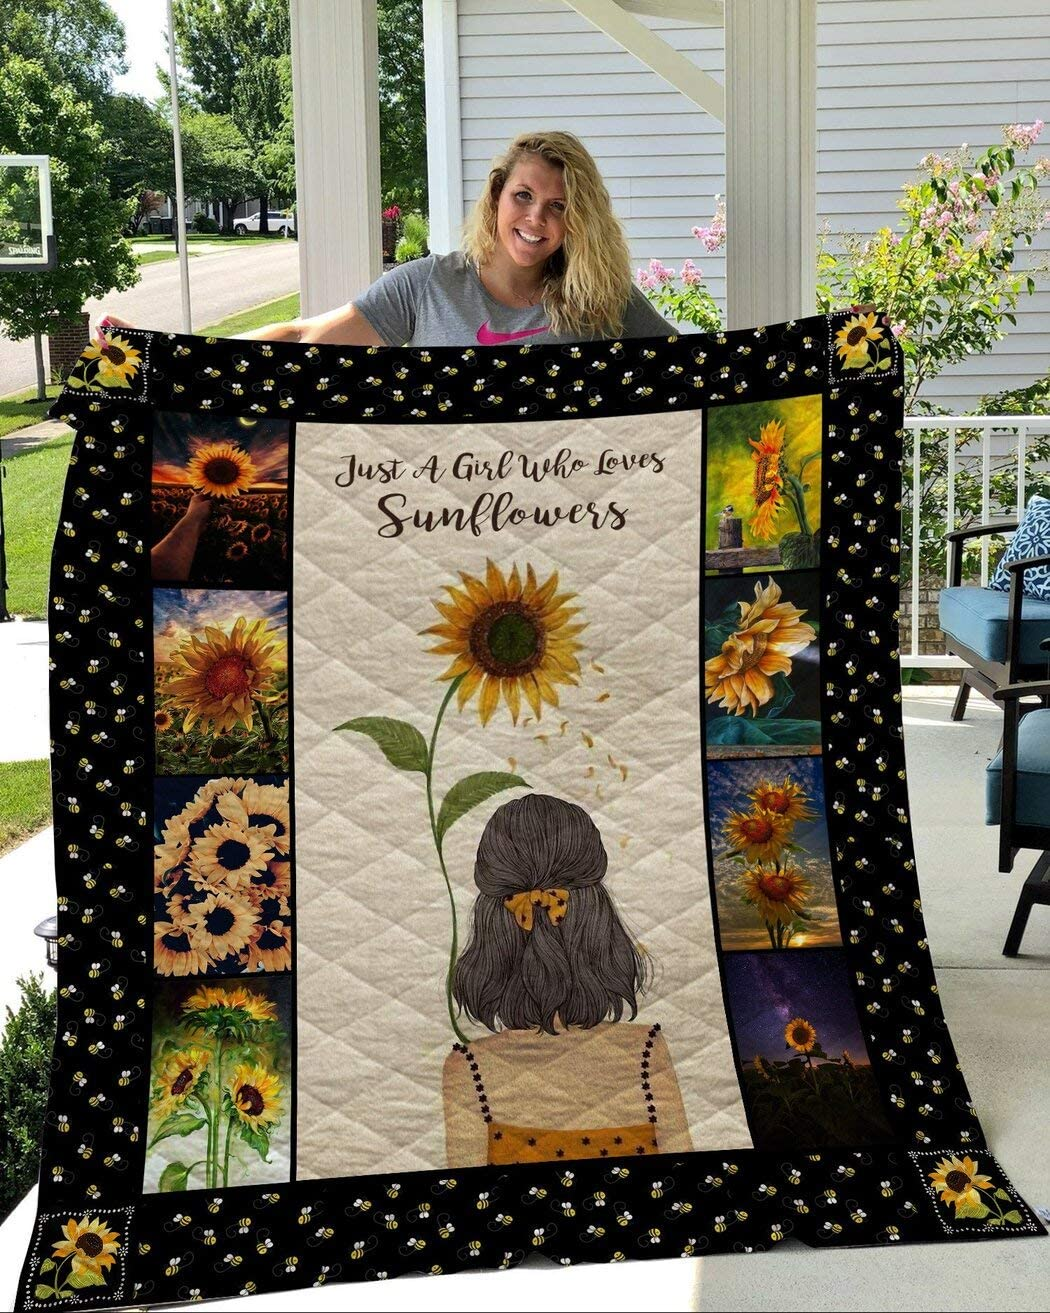 Personalized Sunflowers Quilt Just Recommendation A Girl Da Valentine's Phoenix Mall